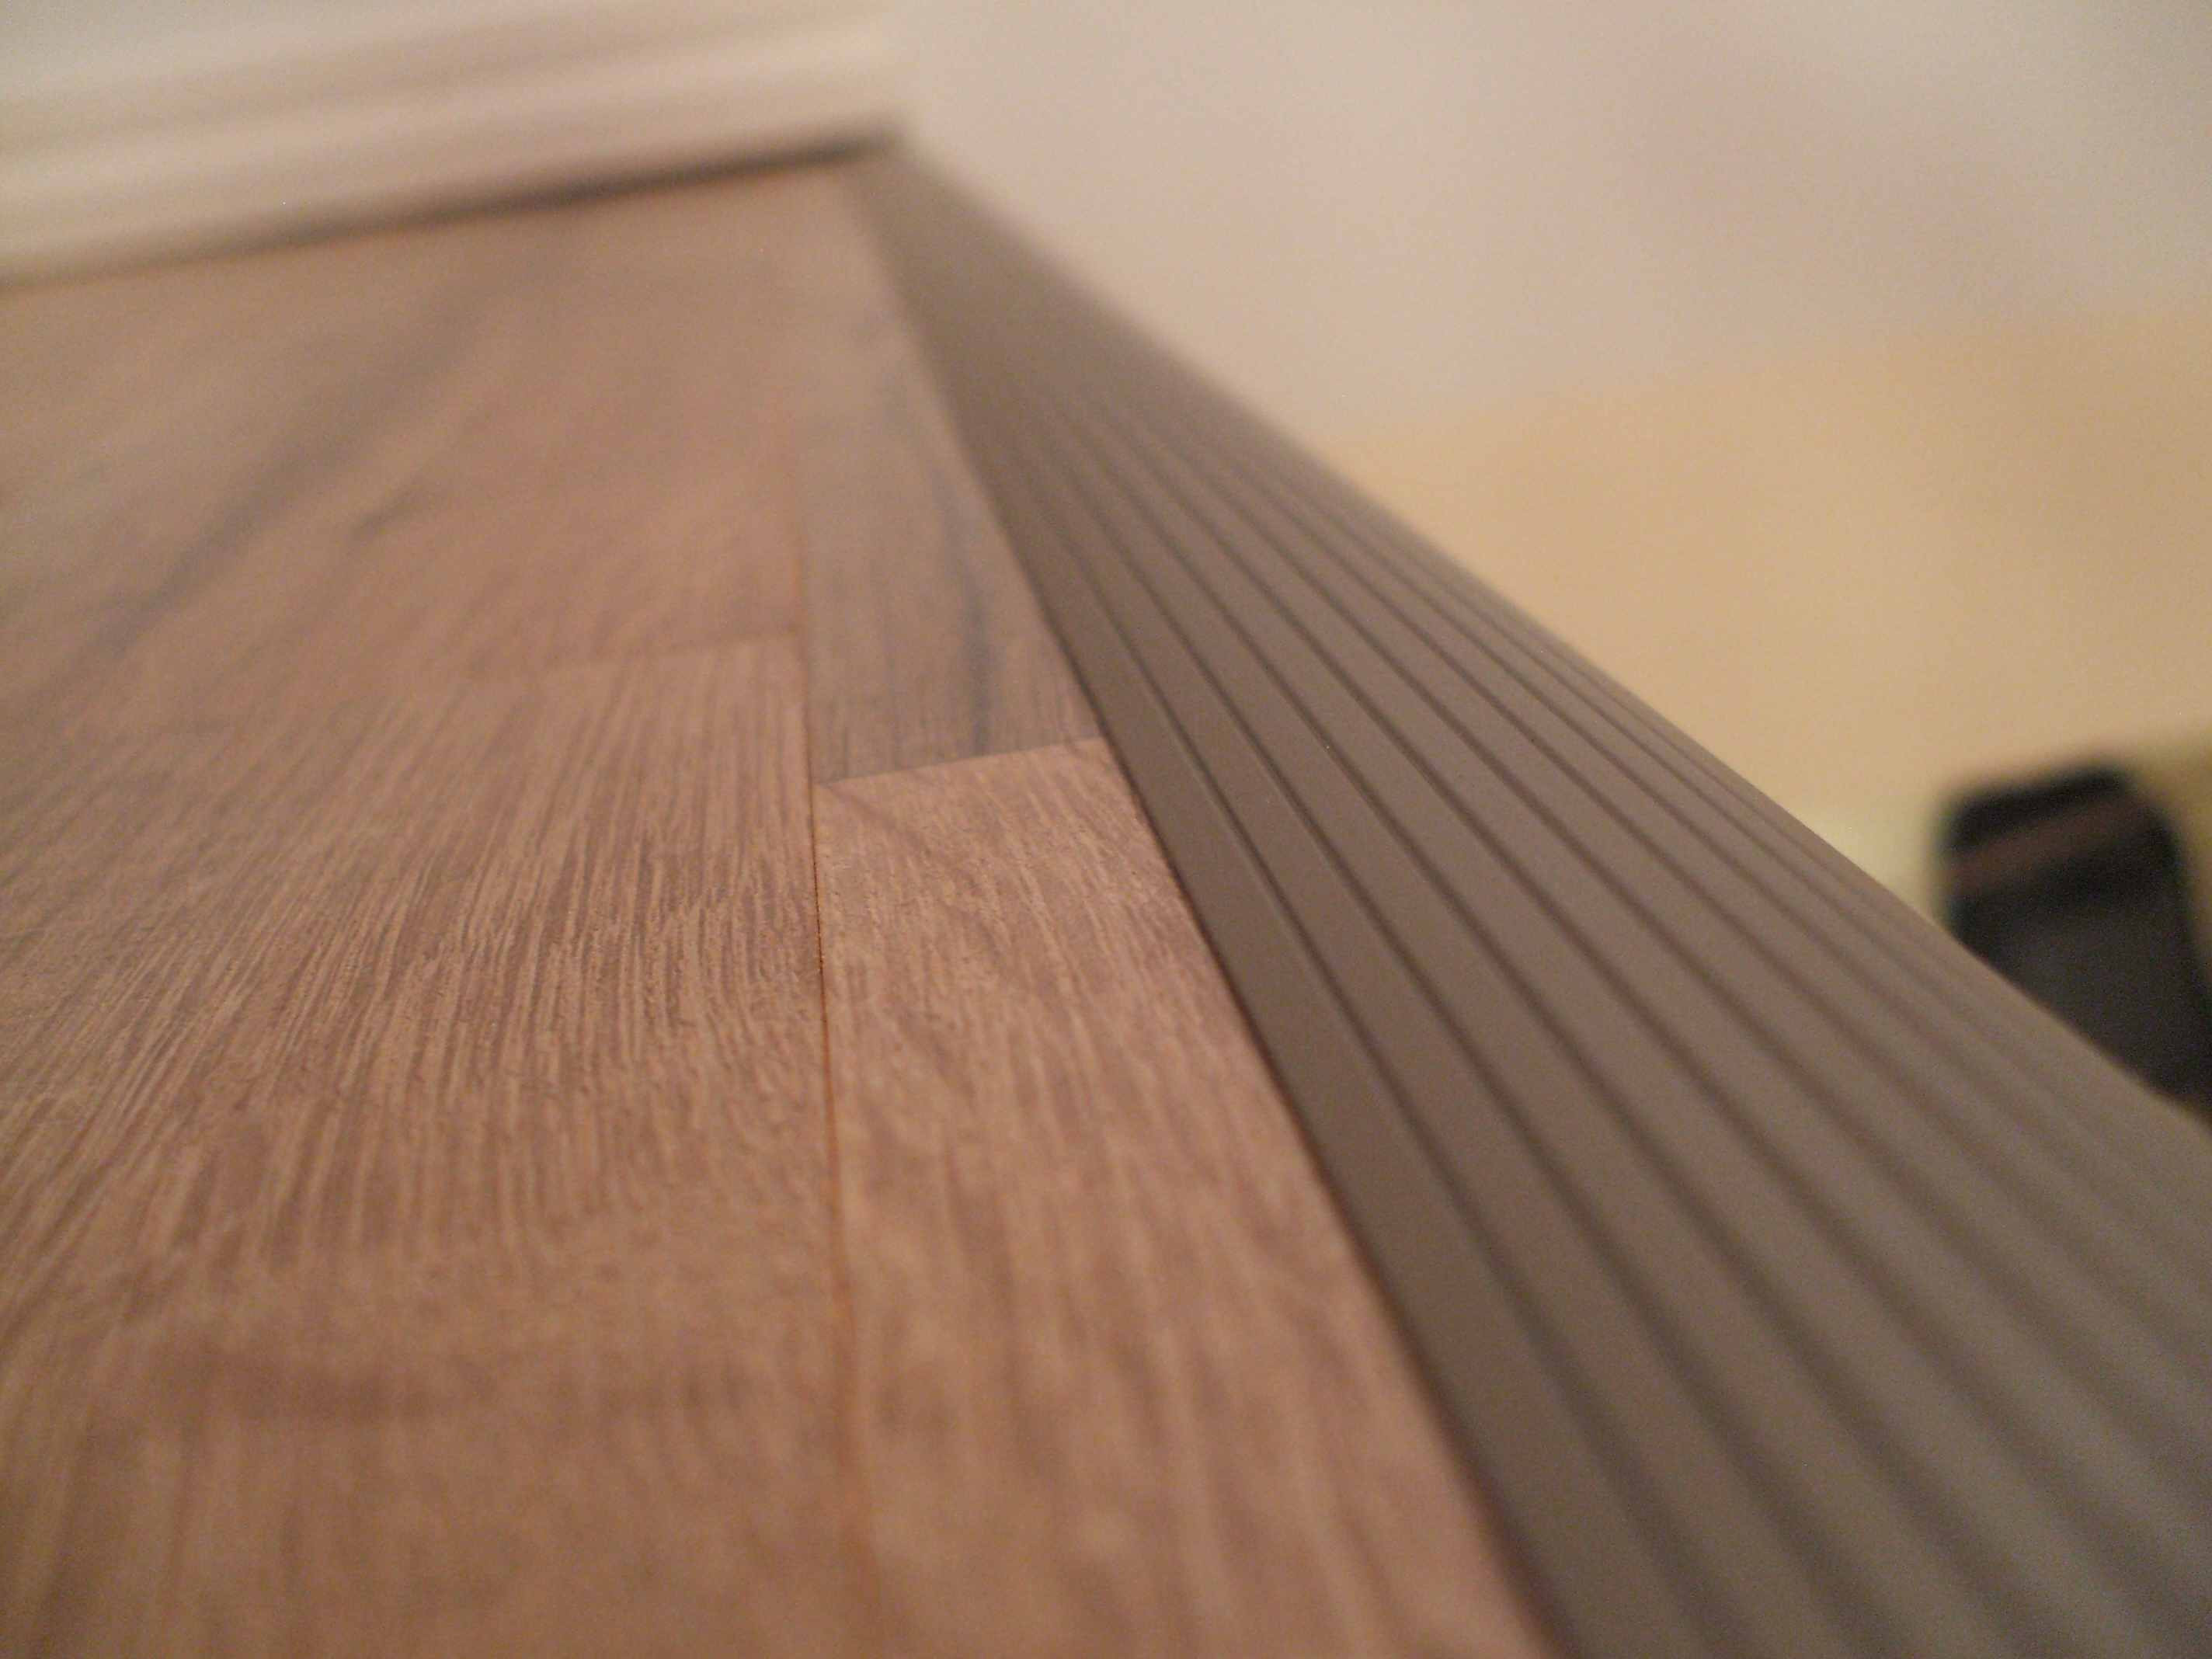 hardwood floor borders ideas of how to install a stair nosing strip with finished edging strip 56a49ca73df78cf77283409a jpg